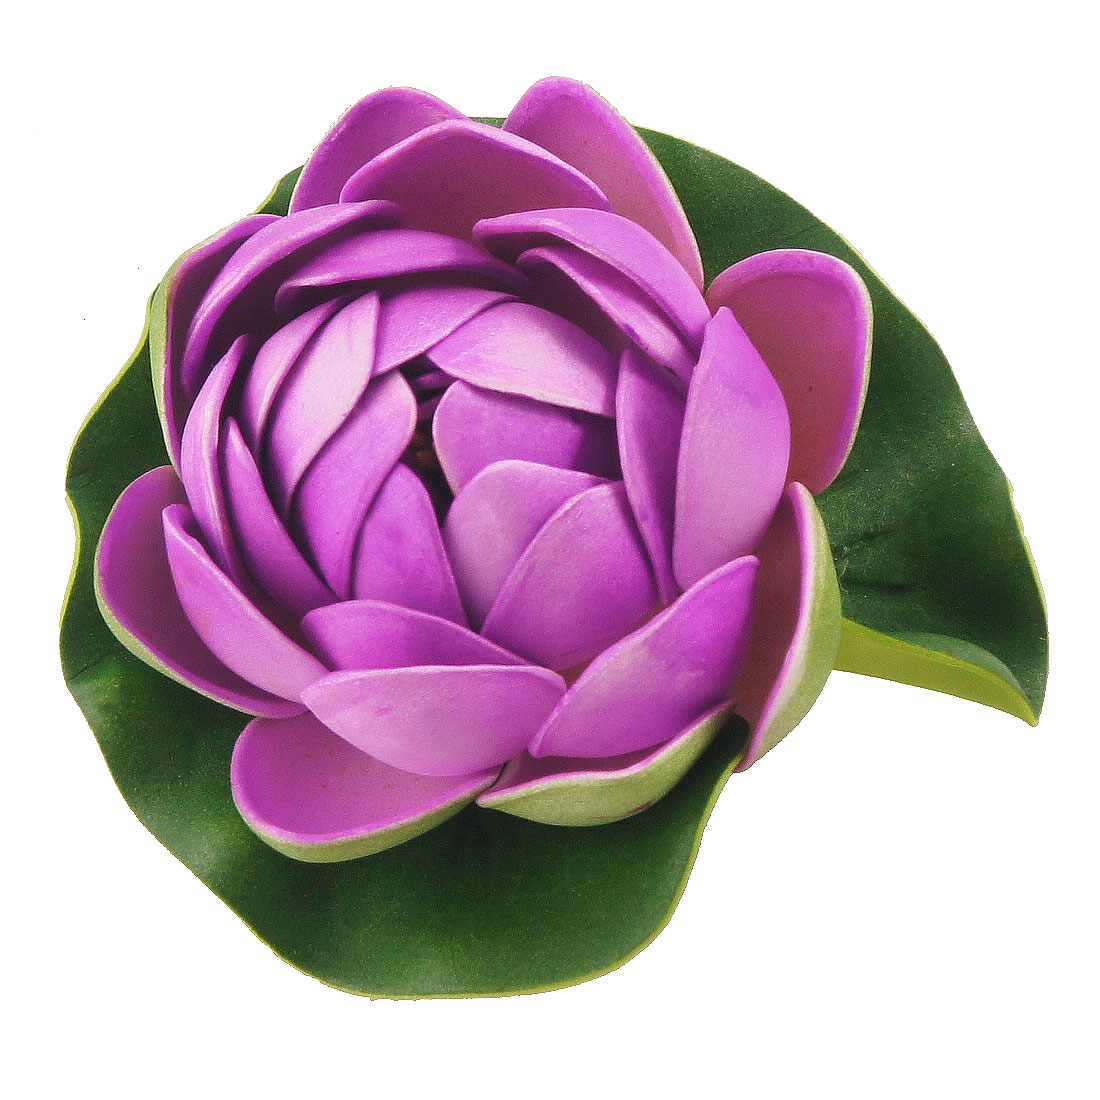 Aquarium Purple Foam Lotus Flower Decor Green Leaf Plant